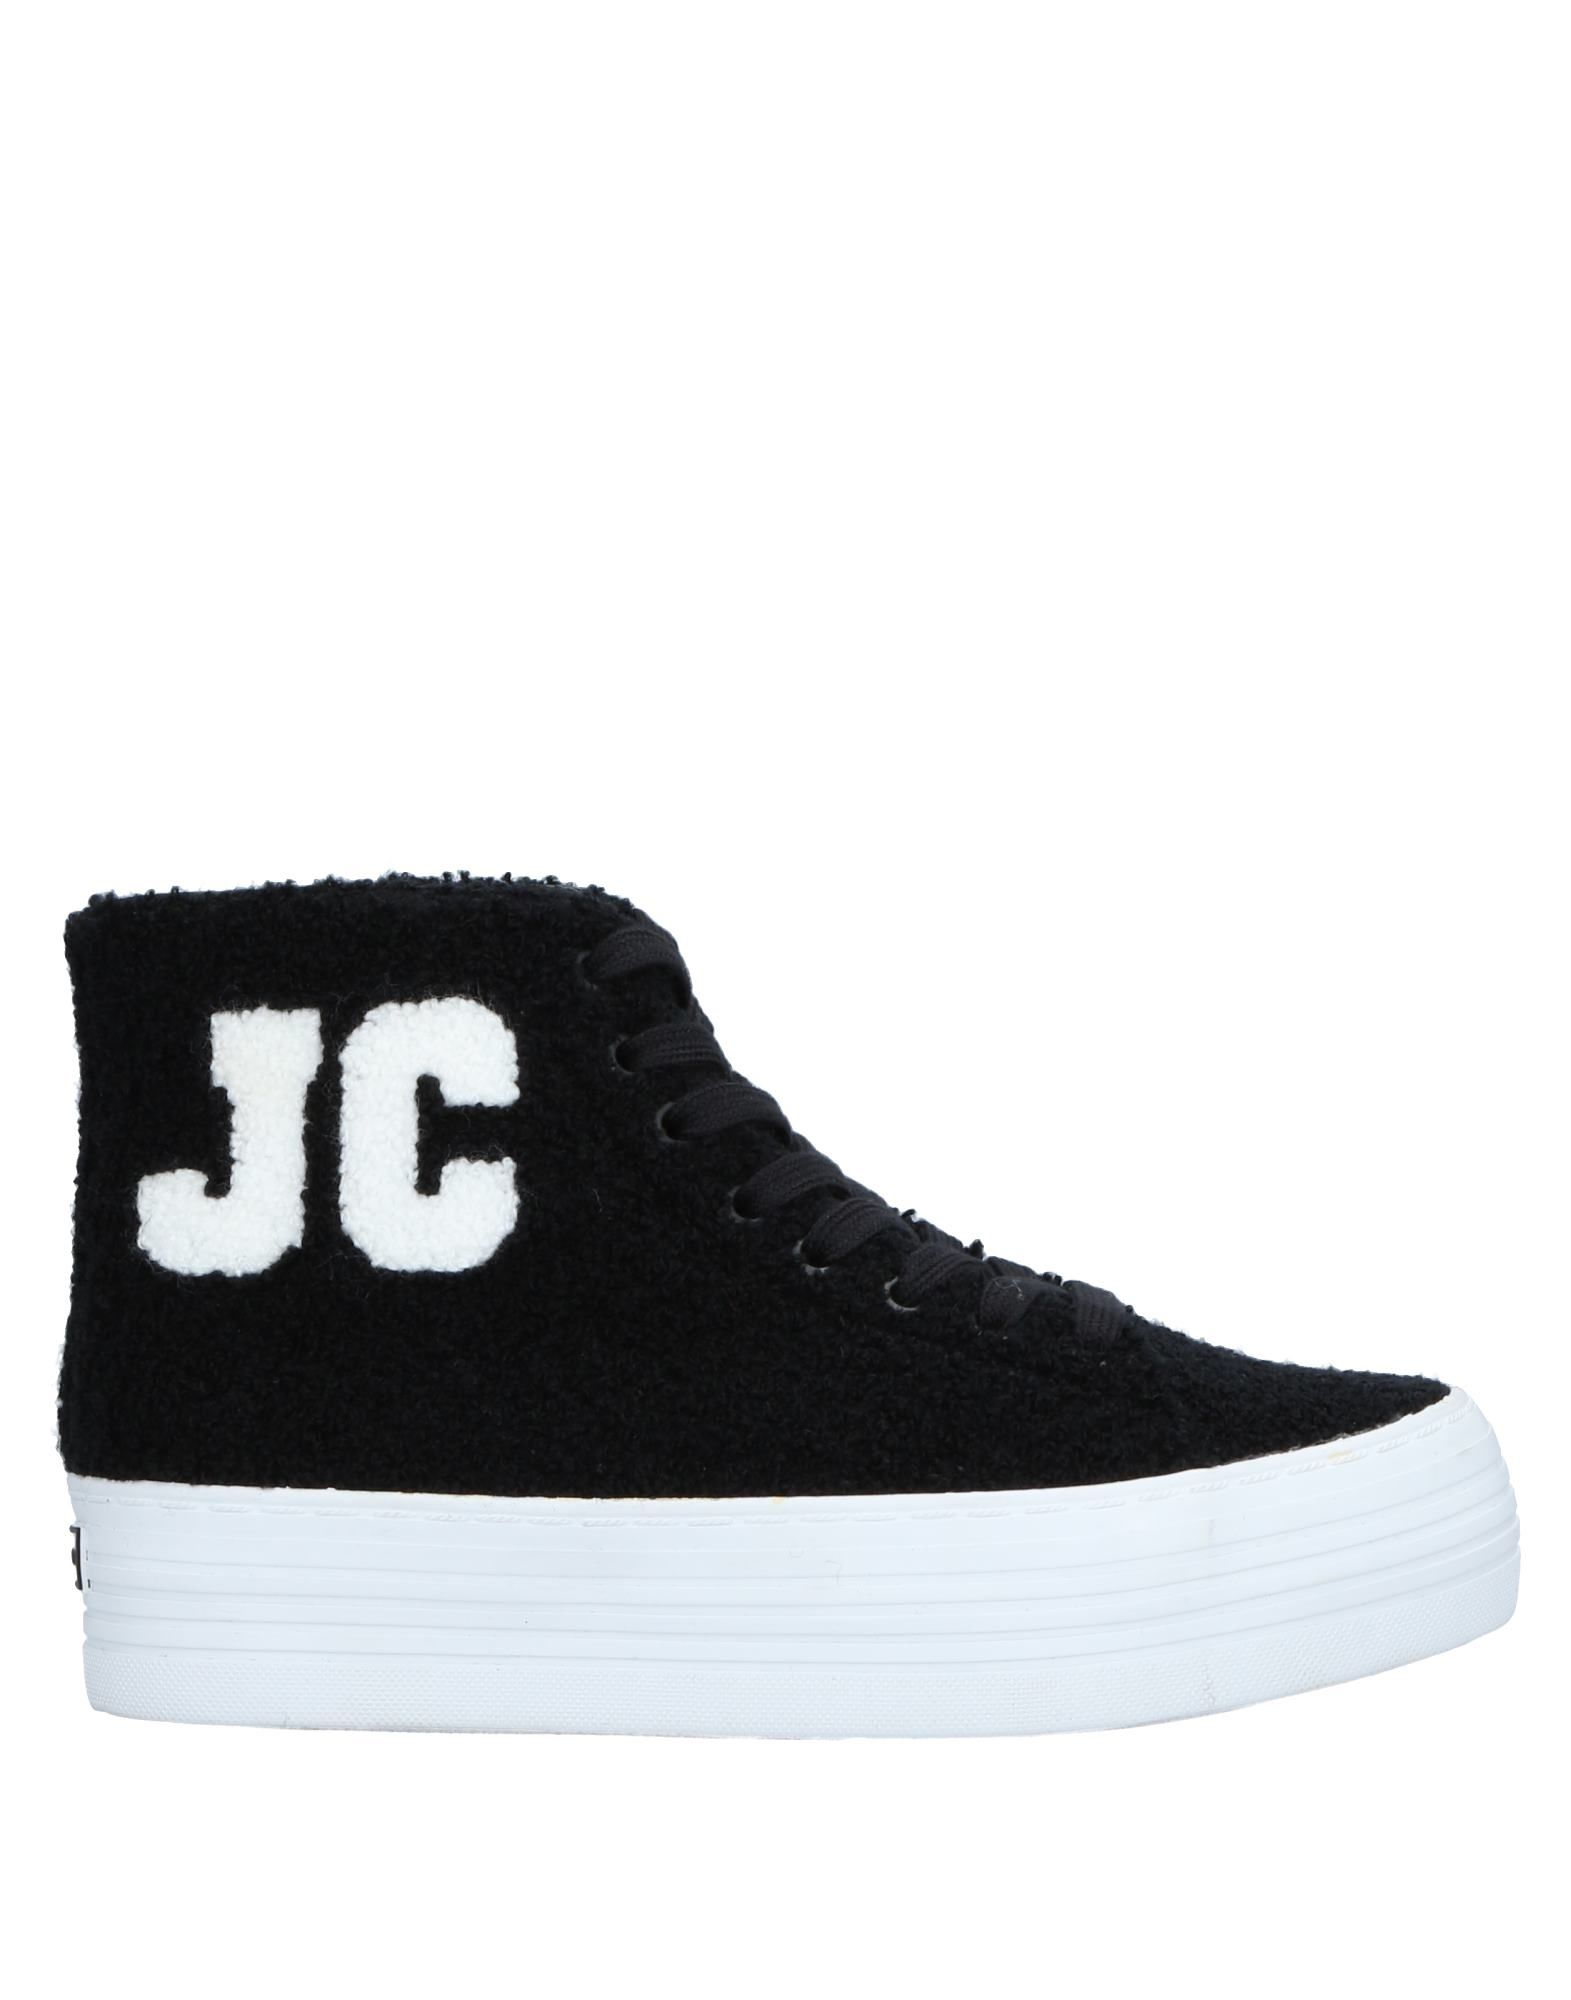 Sneakers Juicy Couture Donna - 11537413LK